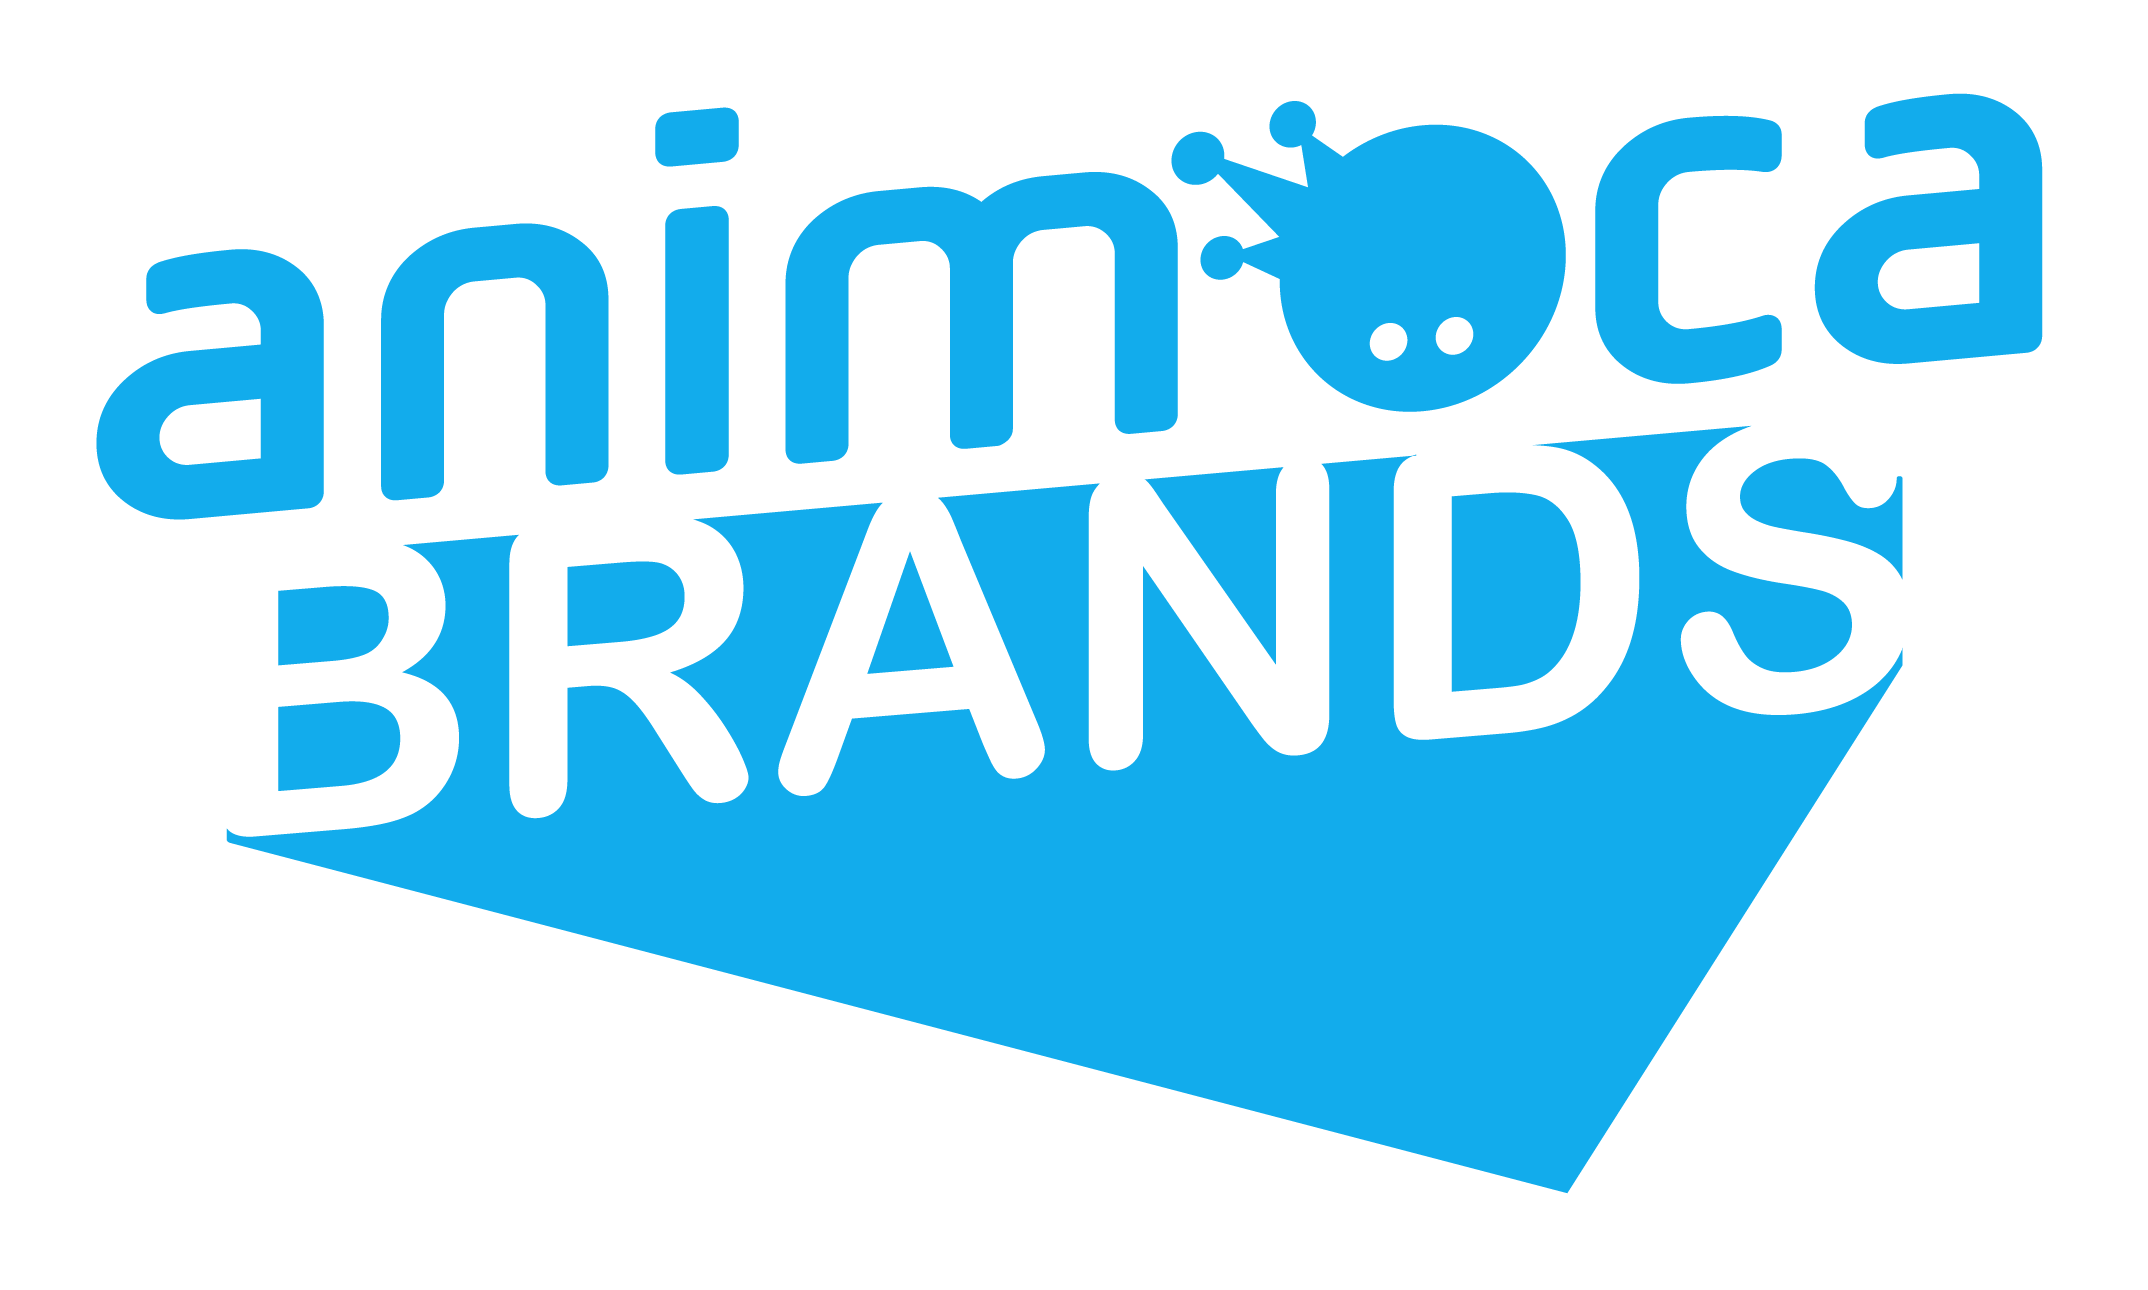 Animoca Brands is the developer and publisher of a broad portfolio of blockchain games, traditional games, and other products, many of which are based on popular global brands, including Formula 1®, Marvel, WWE, Power Rangers, MotoGP™, and Doraemon. Animoca Brands is also a prolific investor with more than 50 investments in NFT-related blockchain companies, including Sky Mavis (Axie Infinity), Dapper Labs (CryptoKitties and NBA Top Shot), OpenSea, Harmony, Bitski, and Alien Worlds.